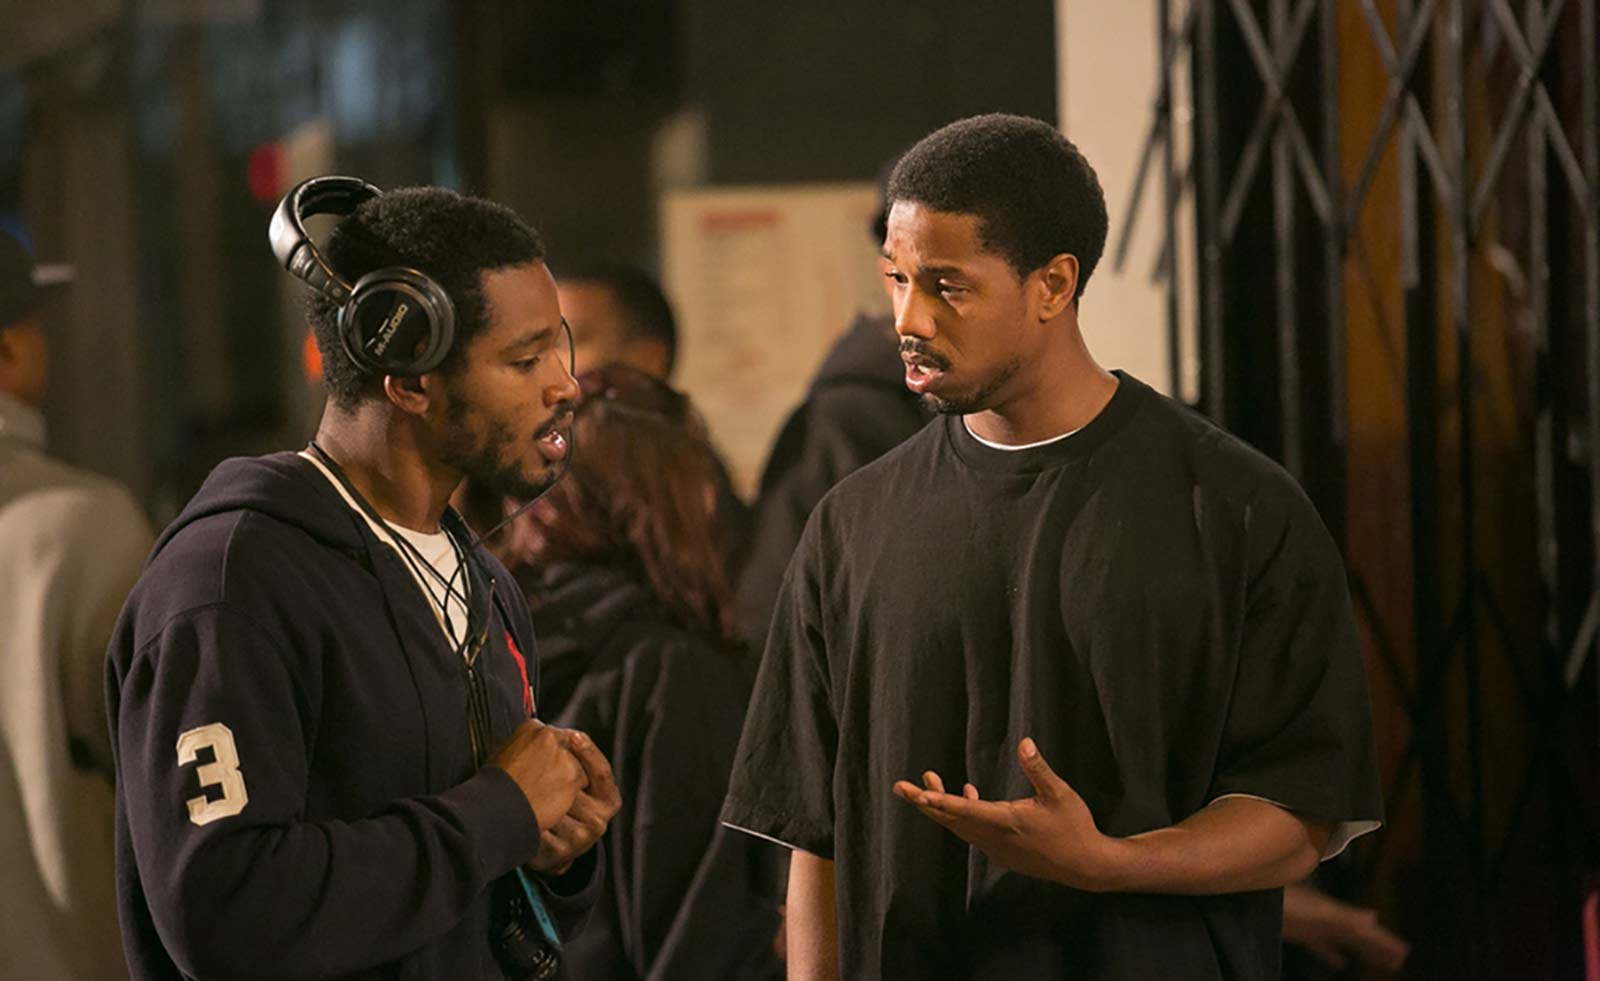 When 'Fruitvale Station' hit the indie movie scene in 2013, it made waves thanks to the story of Oscar Grant being portrayed in an honest light.